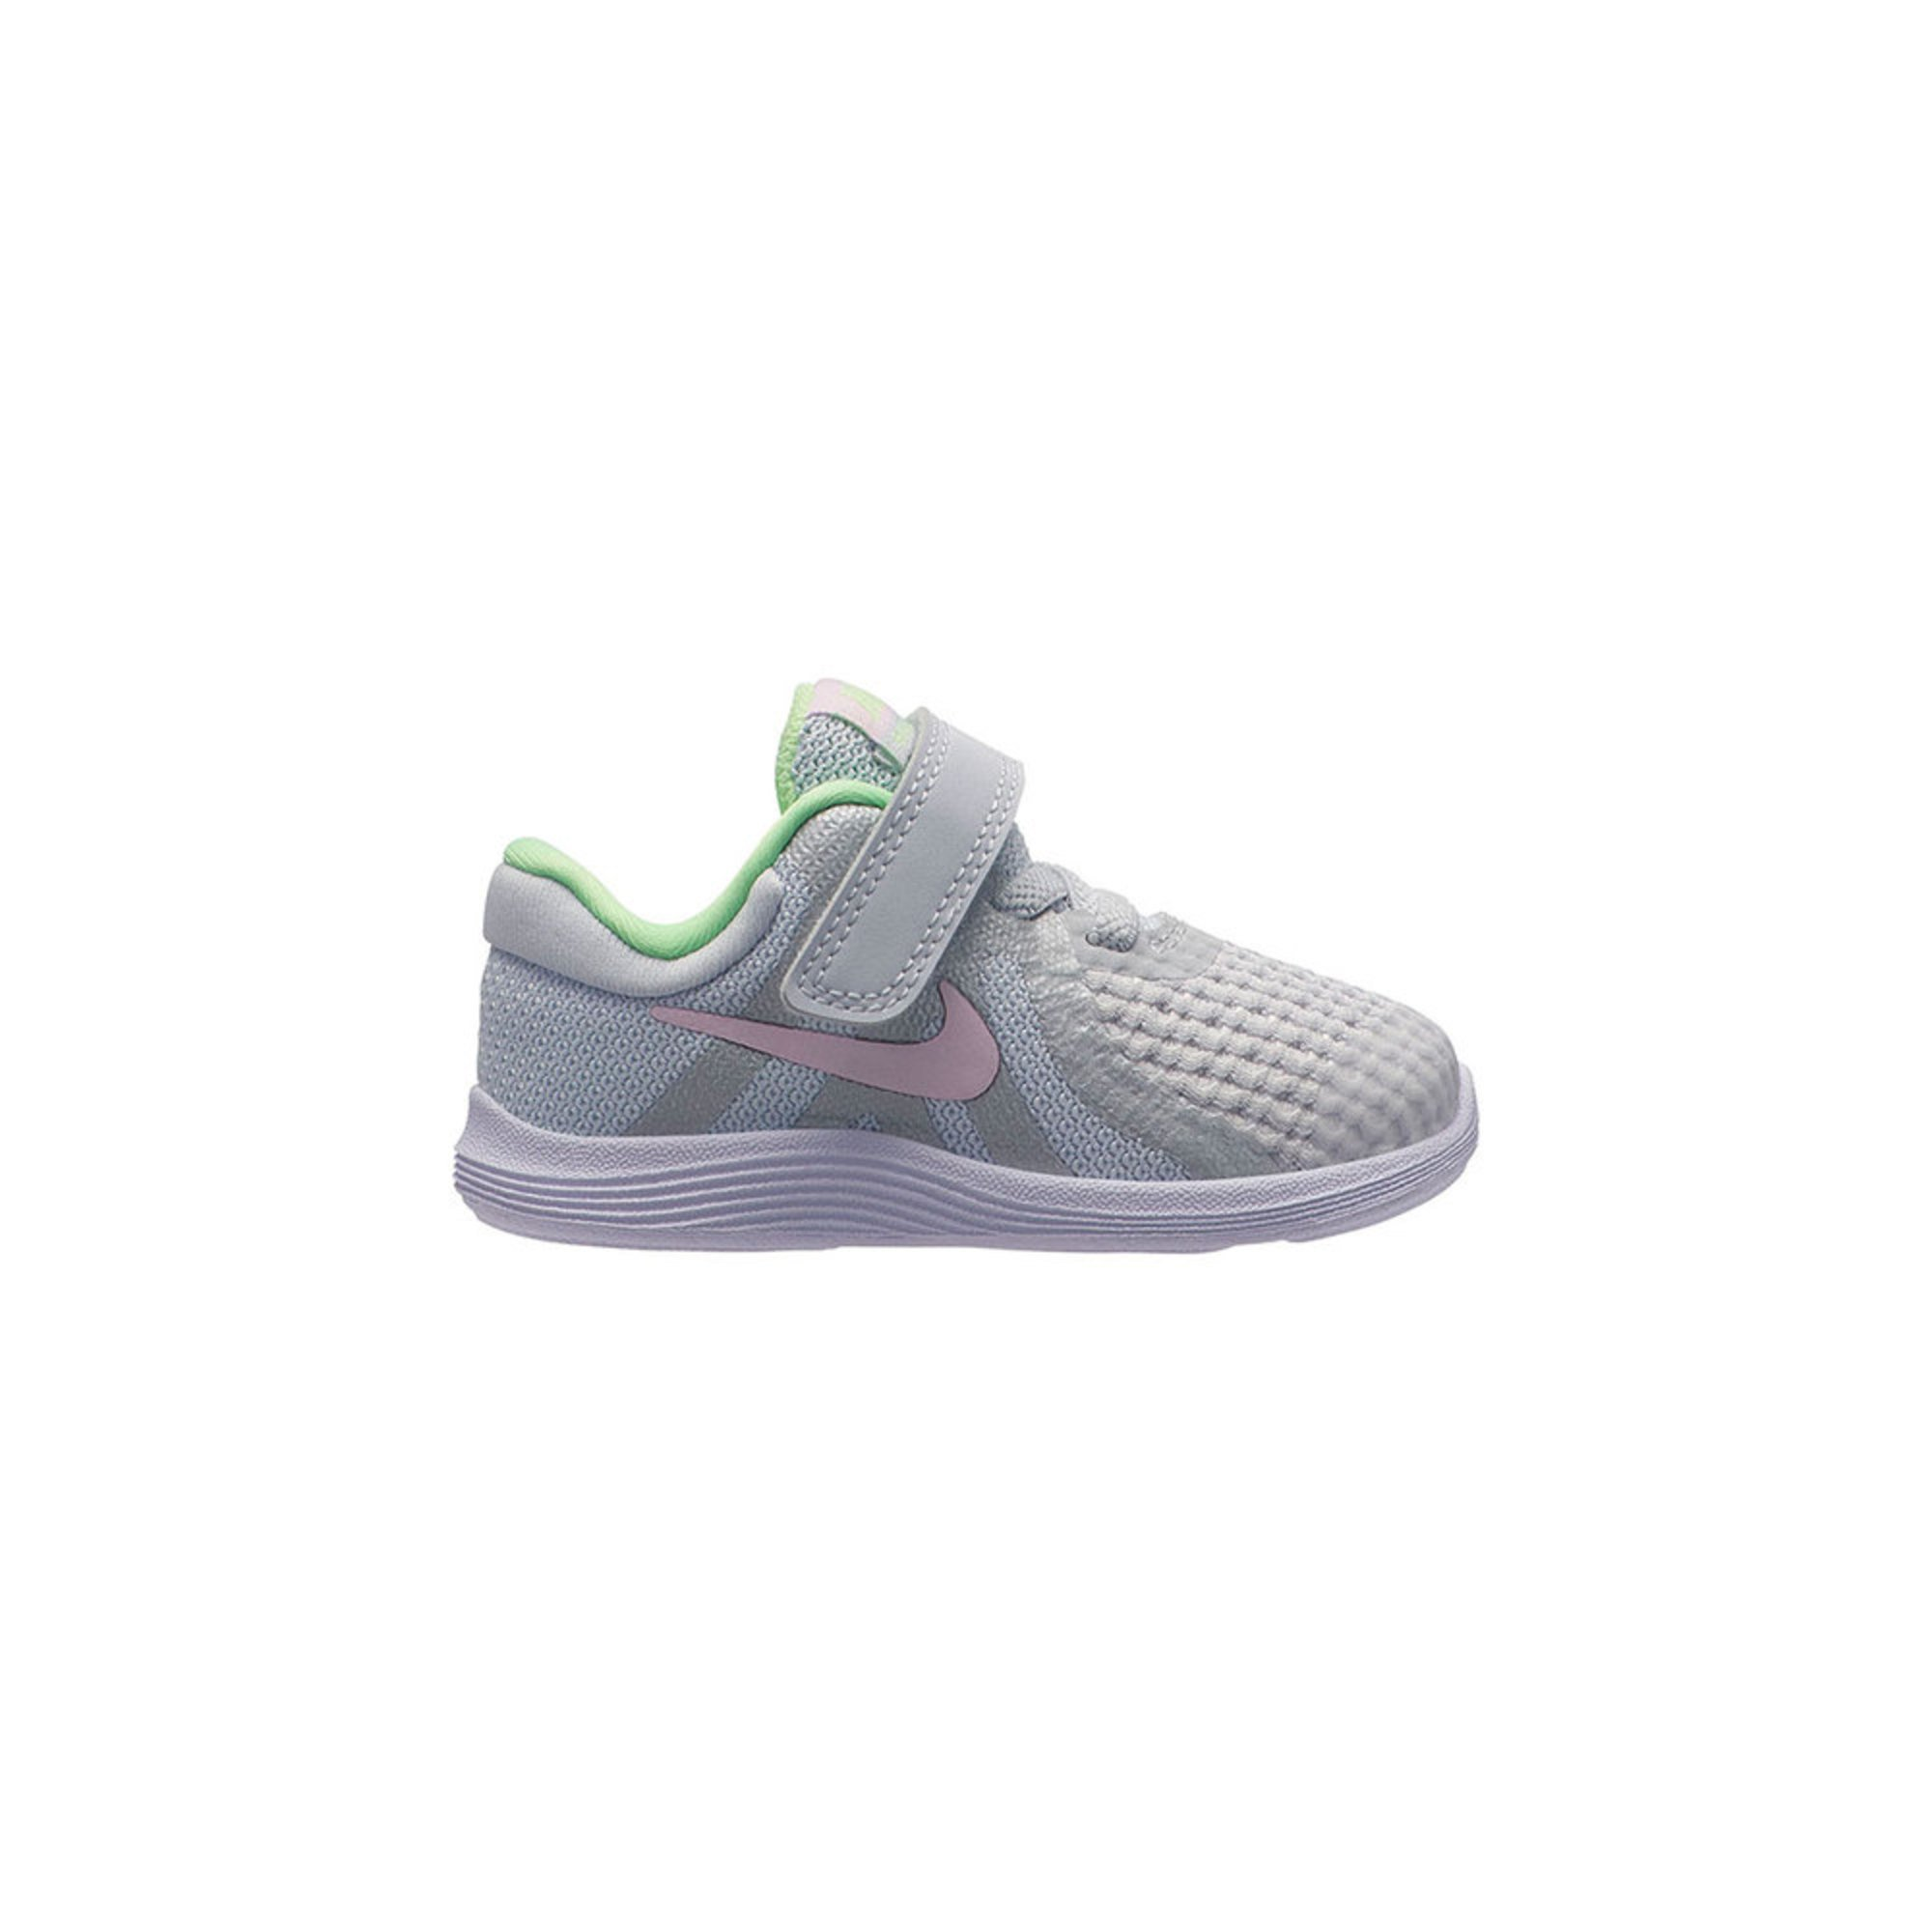 35e3def922ba Nike. Nike Girls Revolution 4 Running Shoe (Infant Toddler)